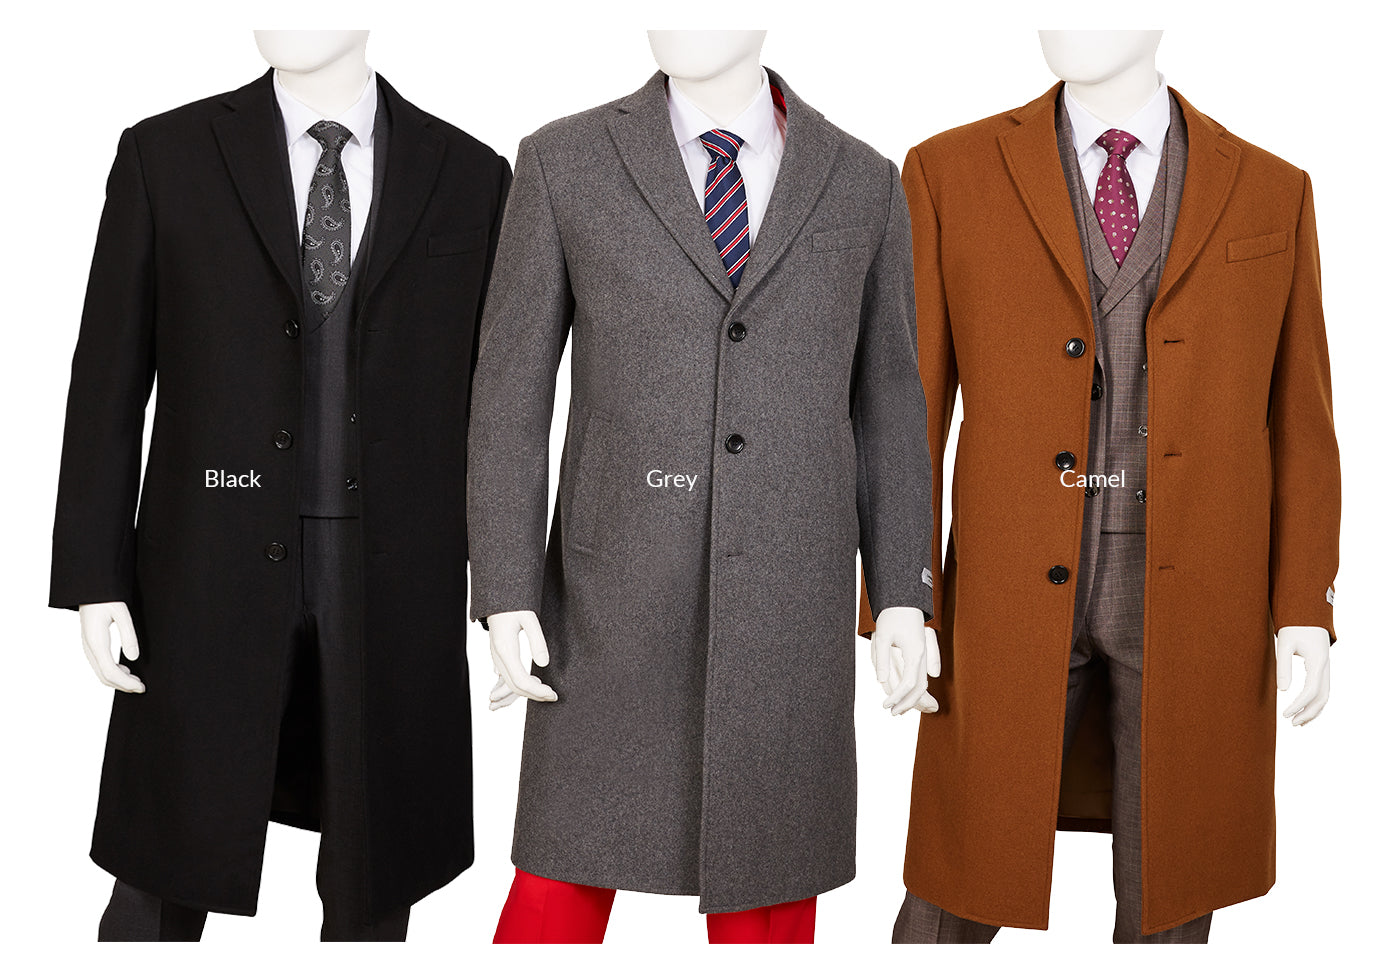 Wool Blend Overcoat - Black - Grey - Camel